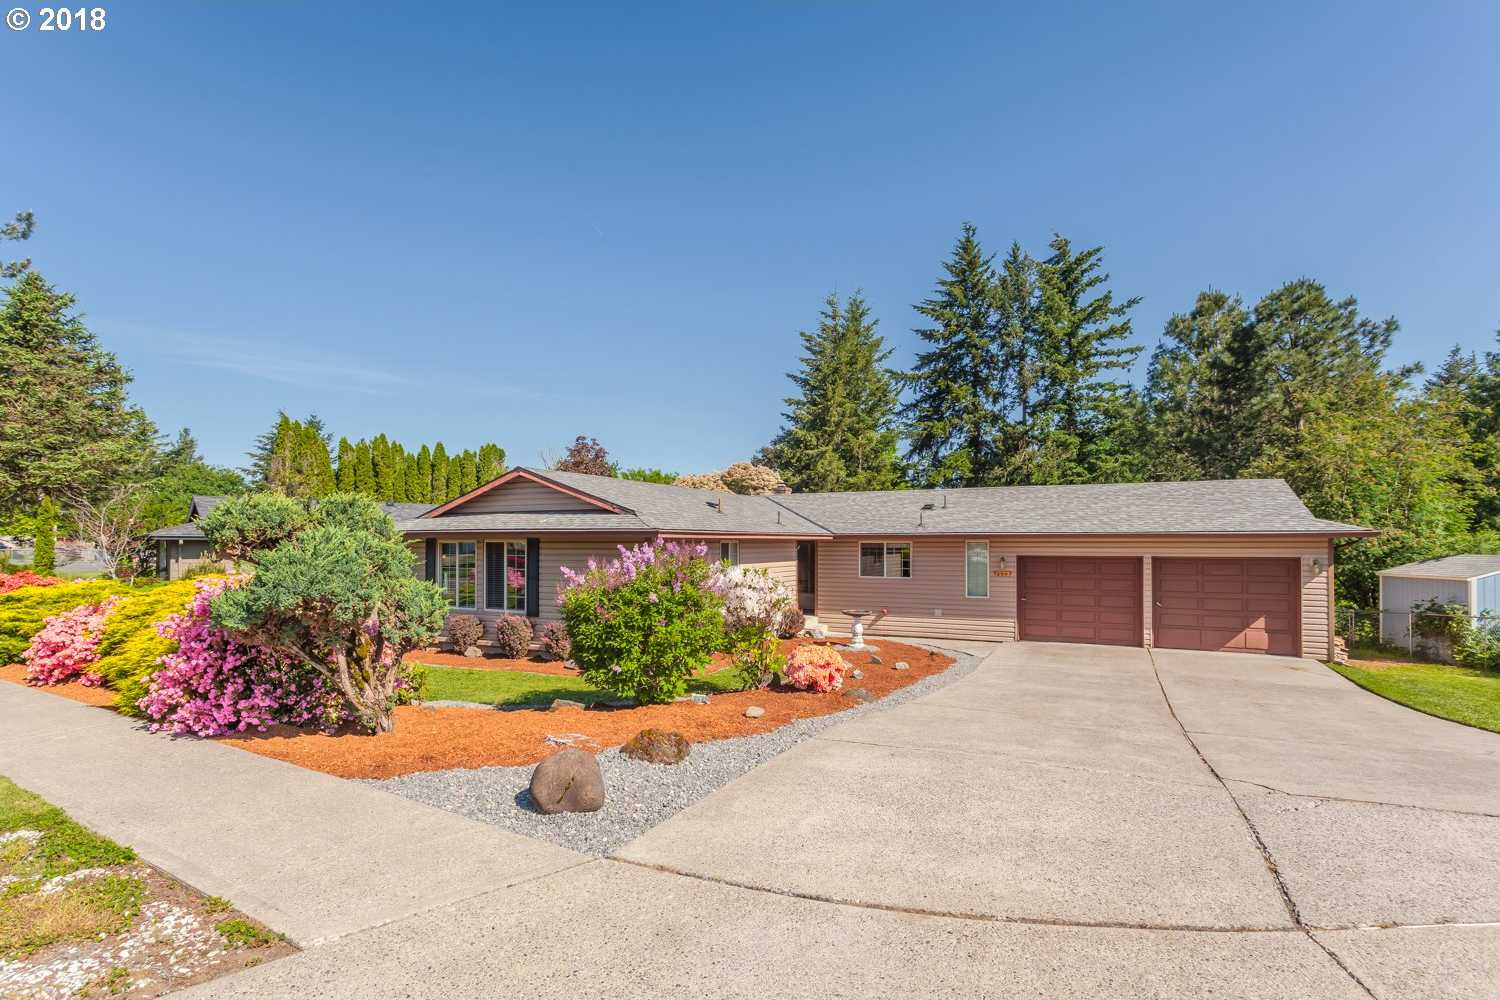 $340,000 - 3Br/2Ba -  for Sale in Troutdale